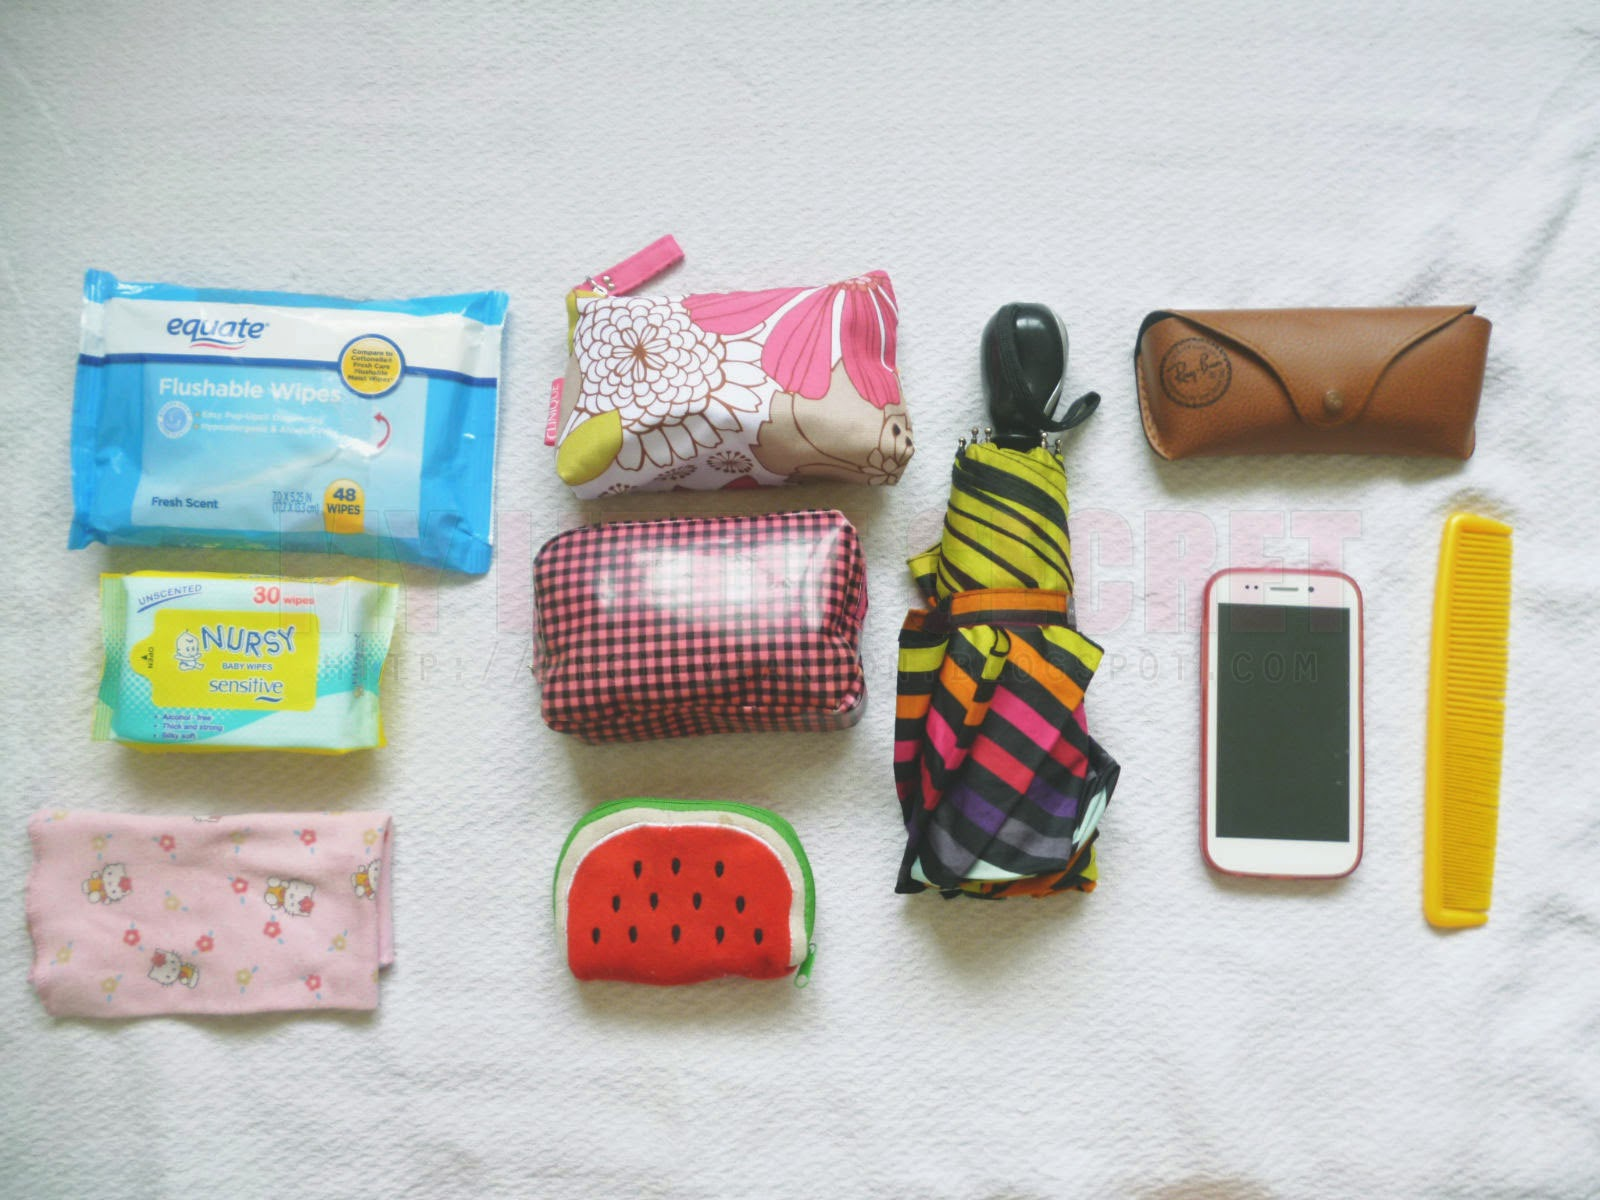 What's In My Bag? (McKayla Edition)